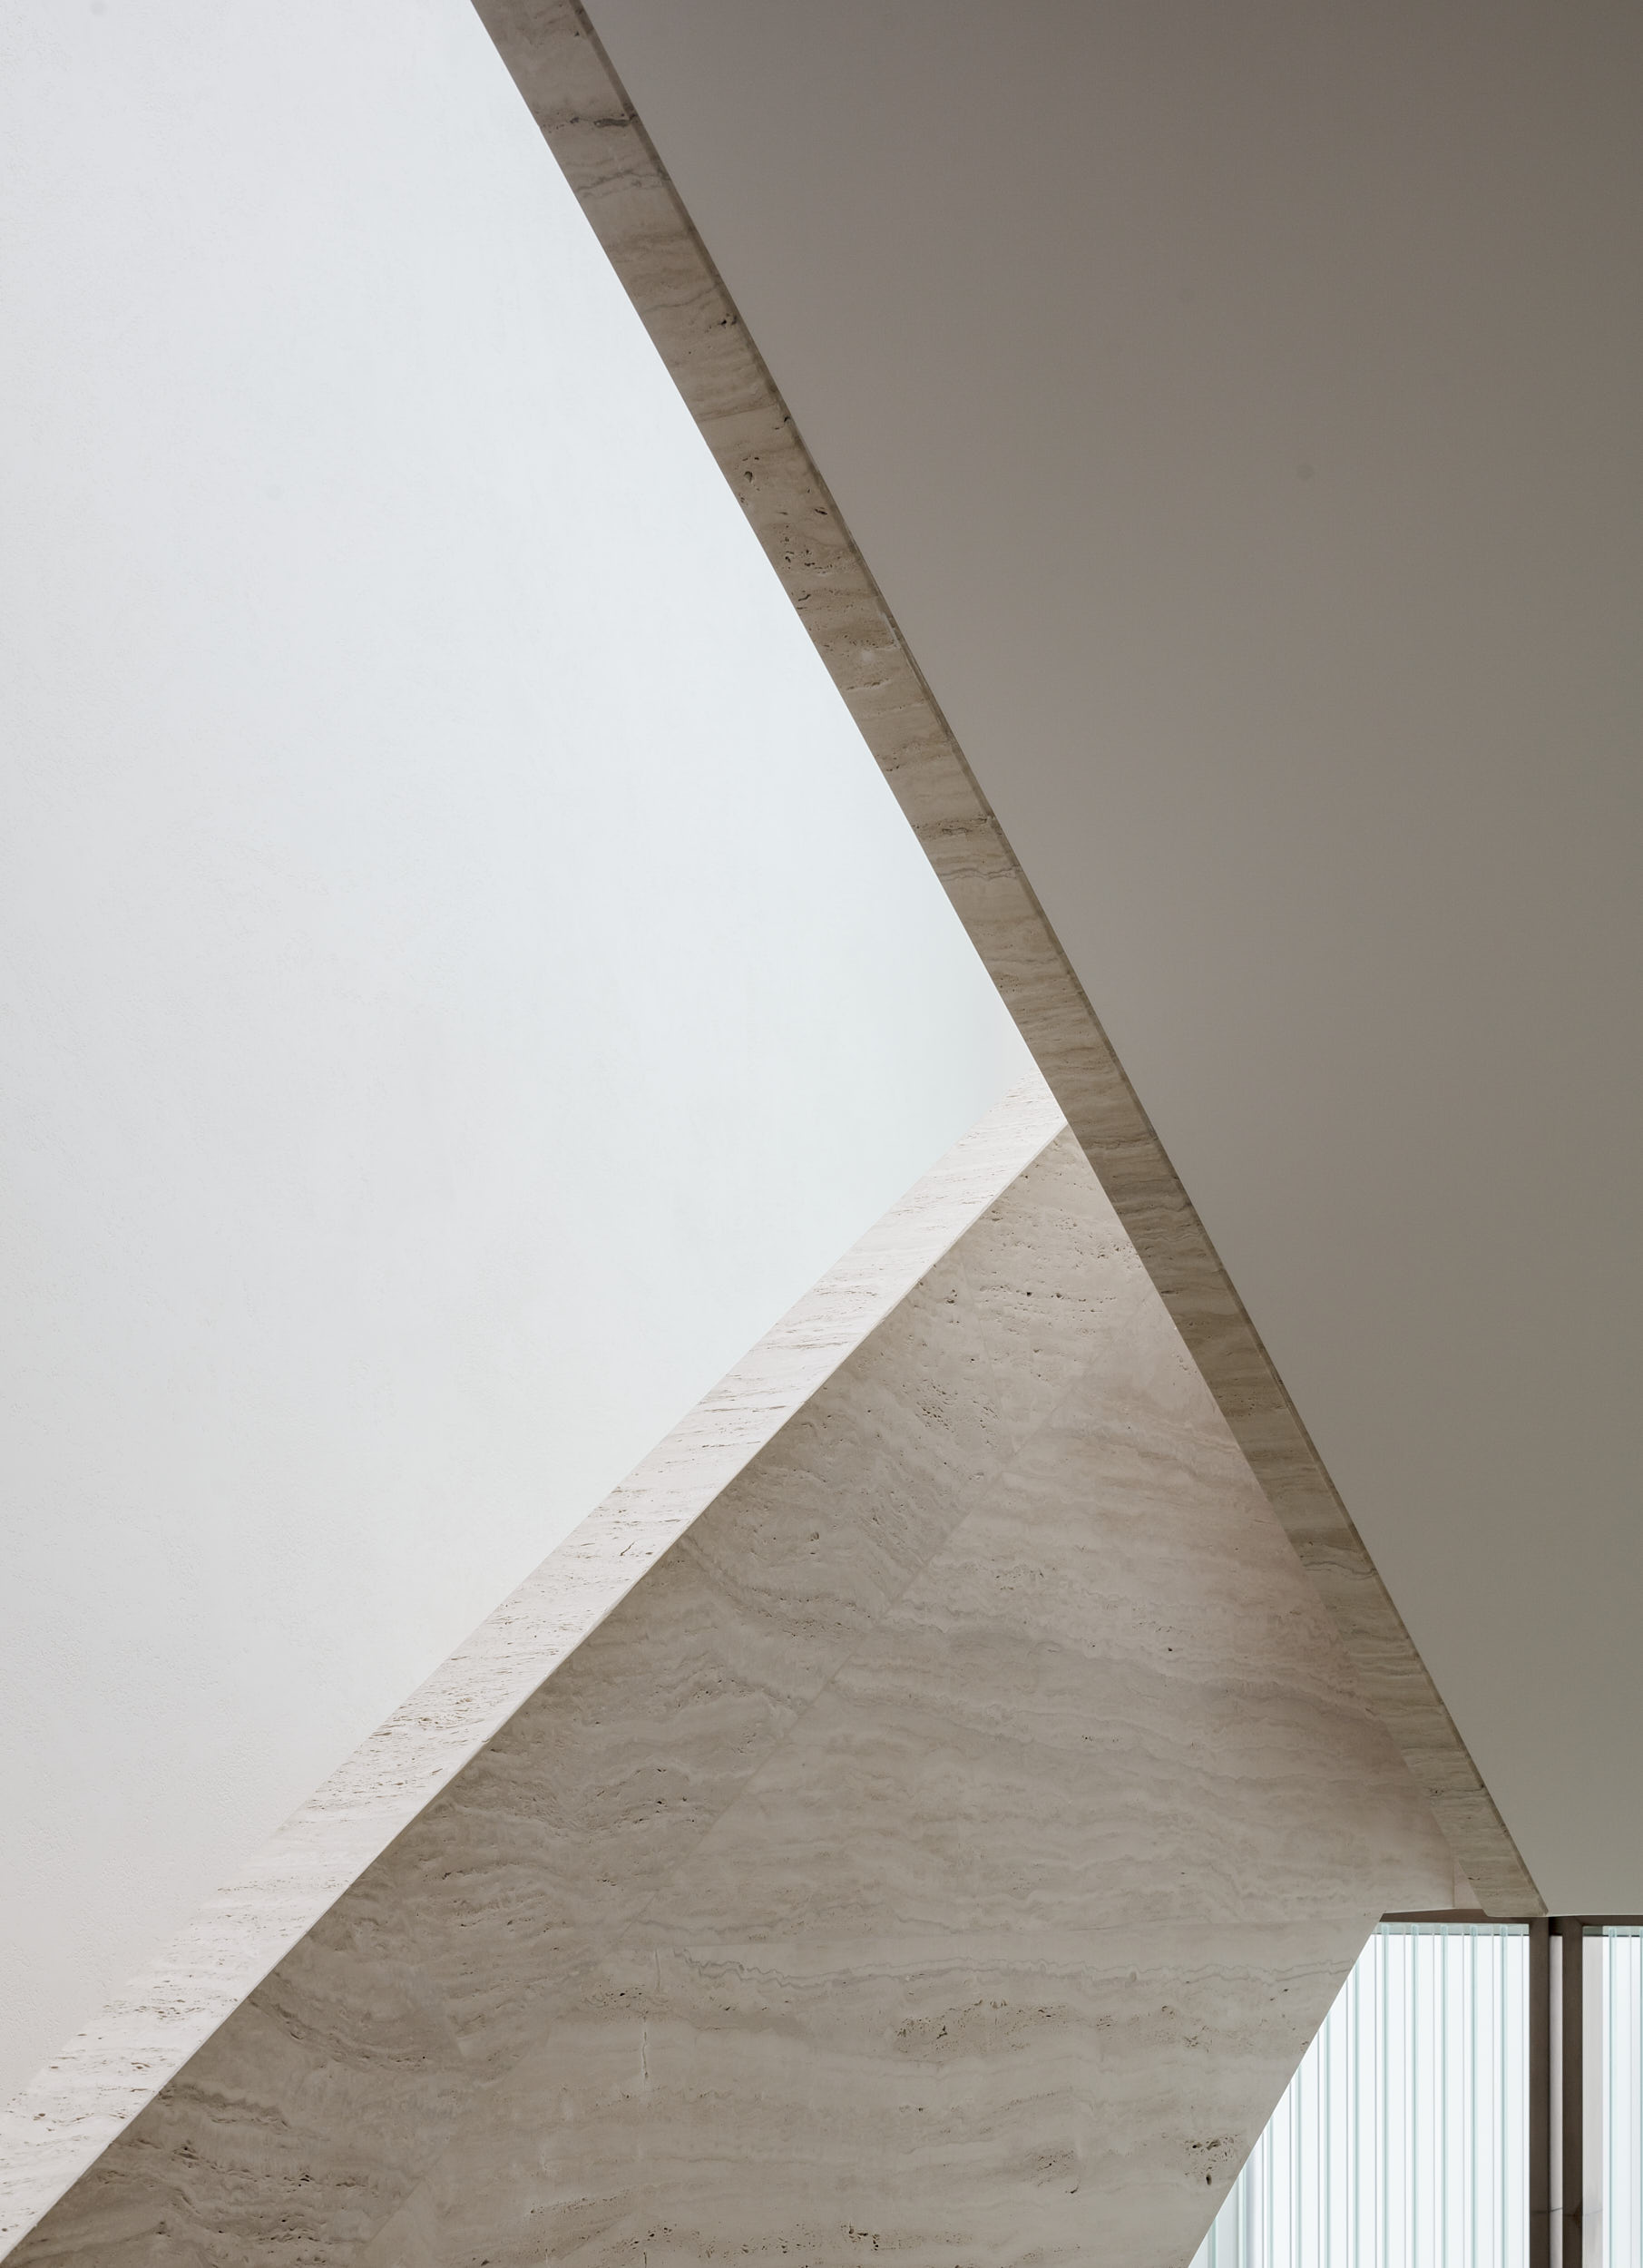 Interior photograph showing the minimalist architecture of the stair.